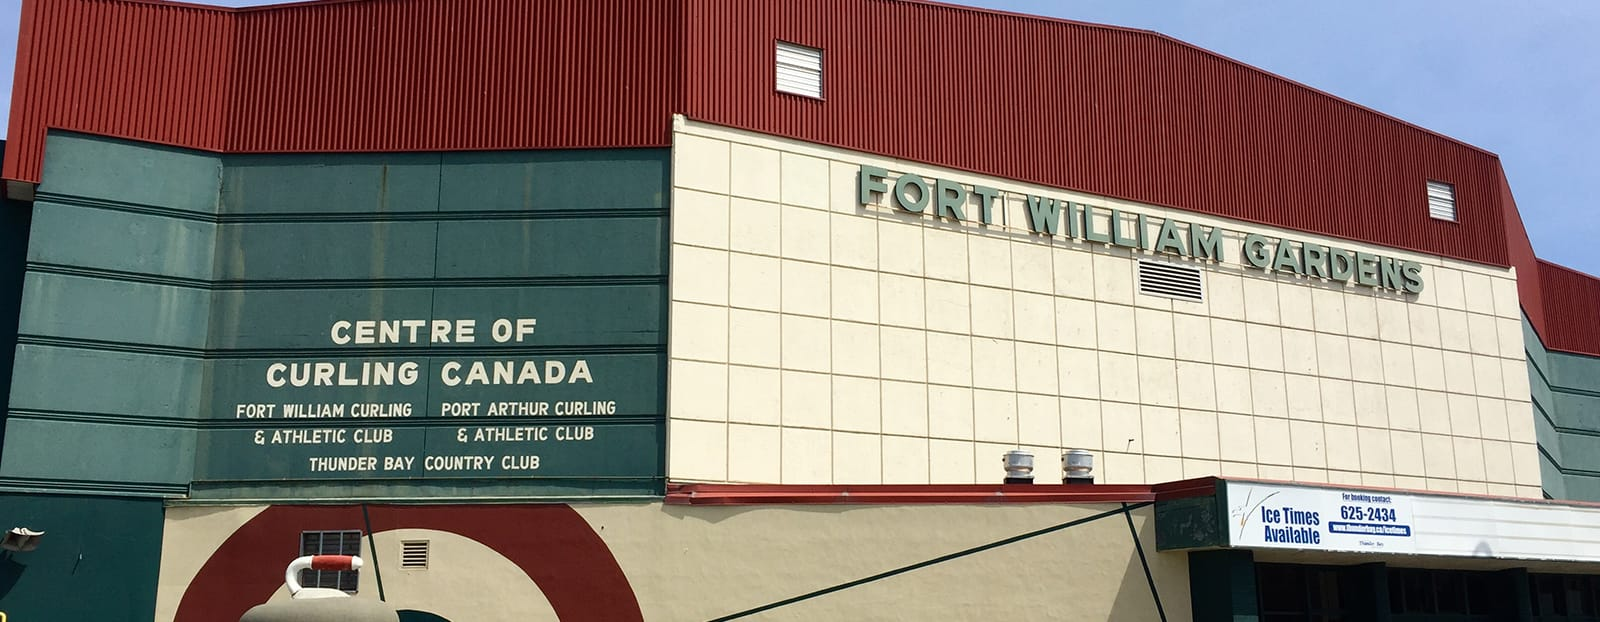 fort williams curling and athletic club